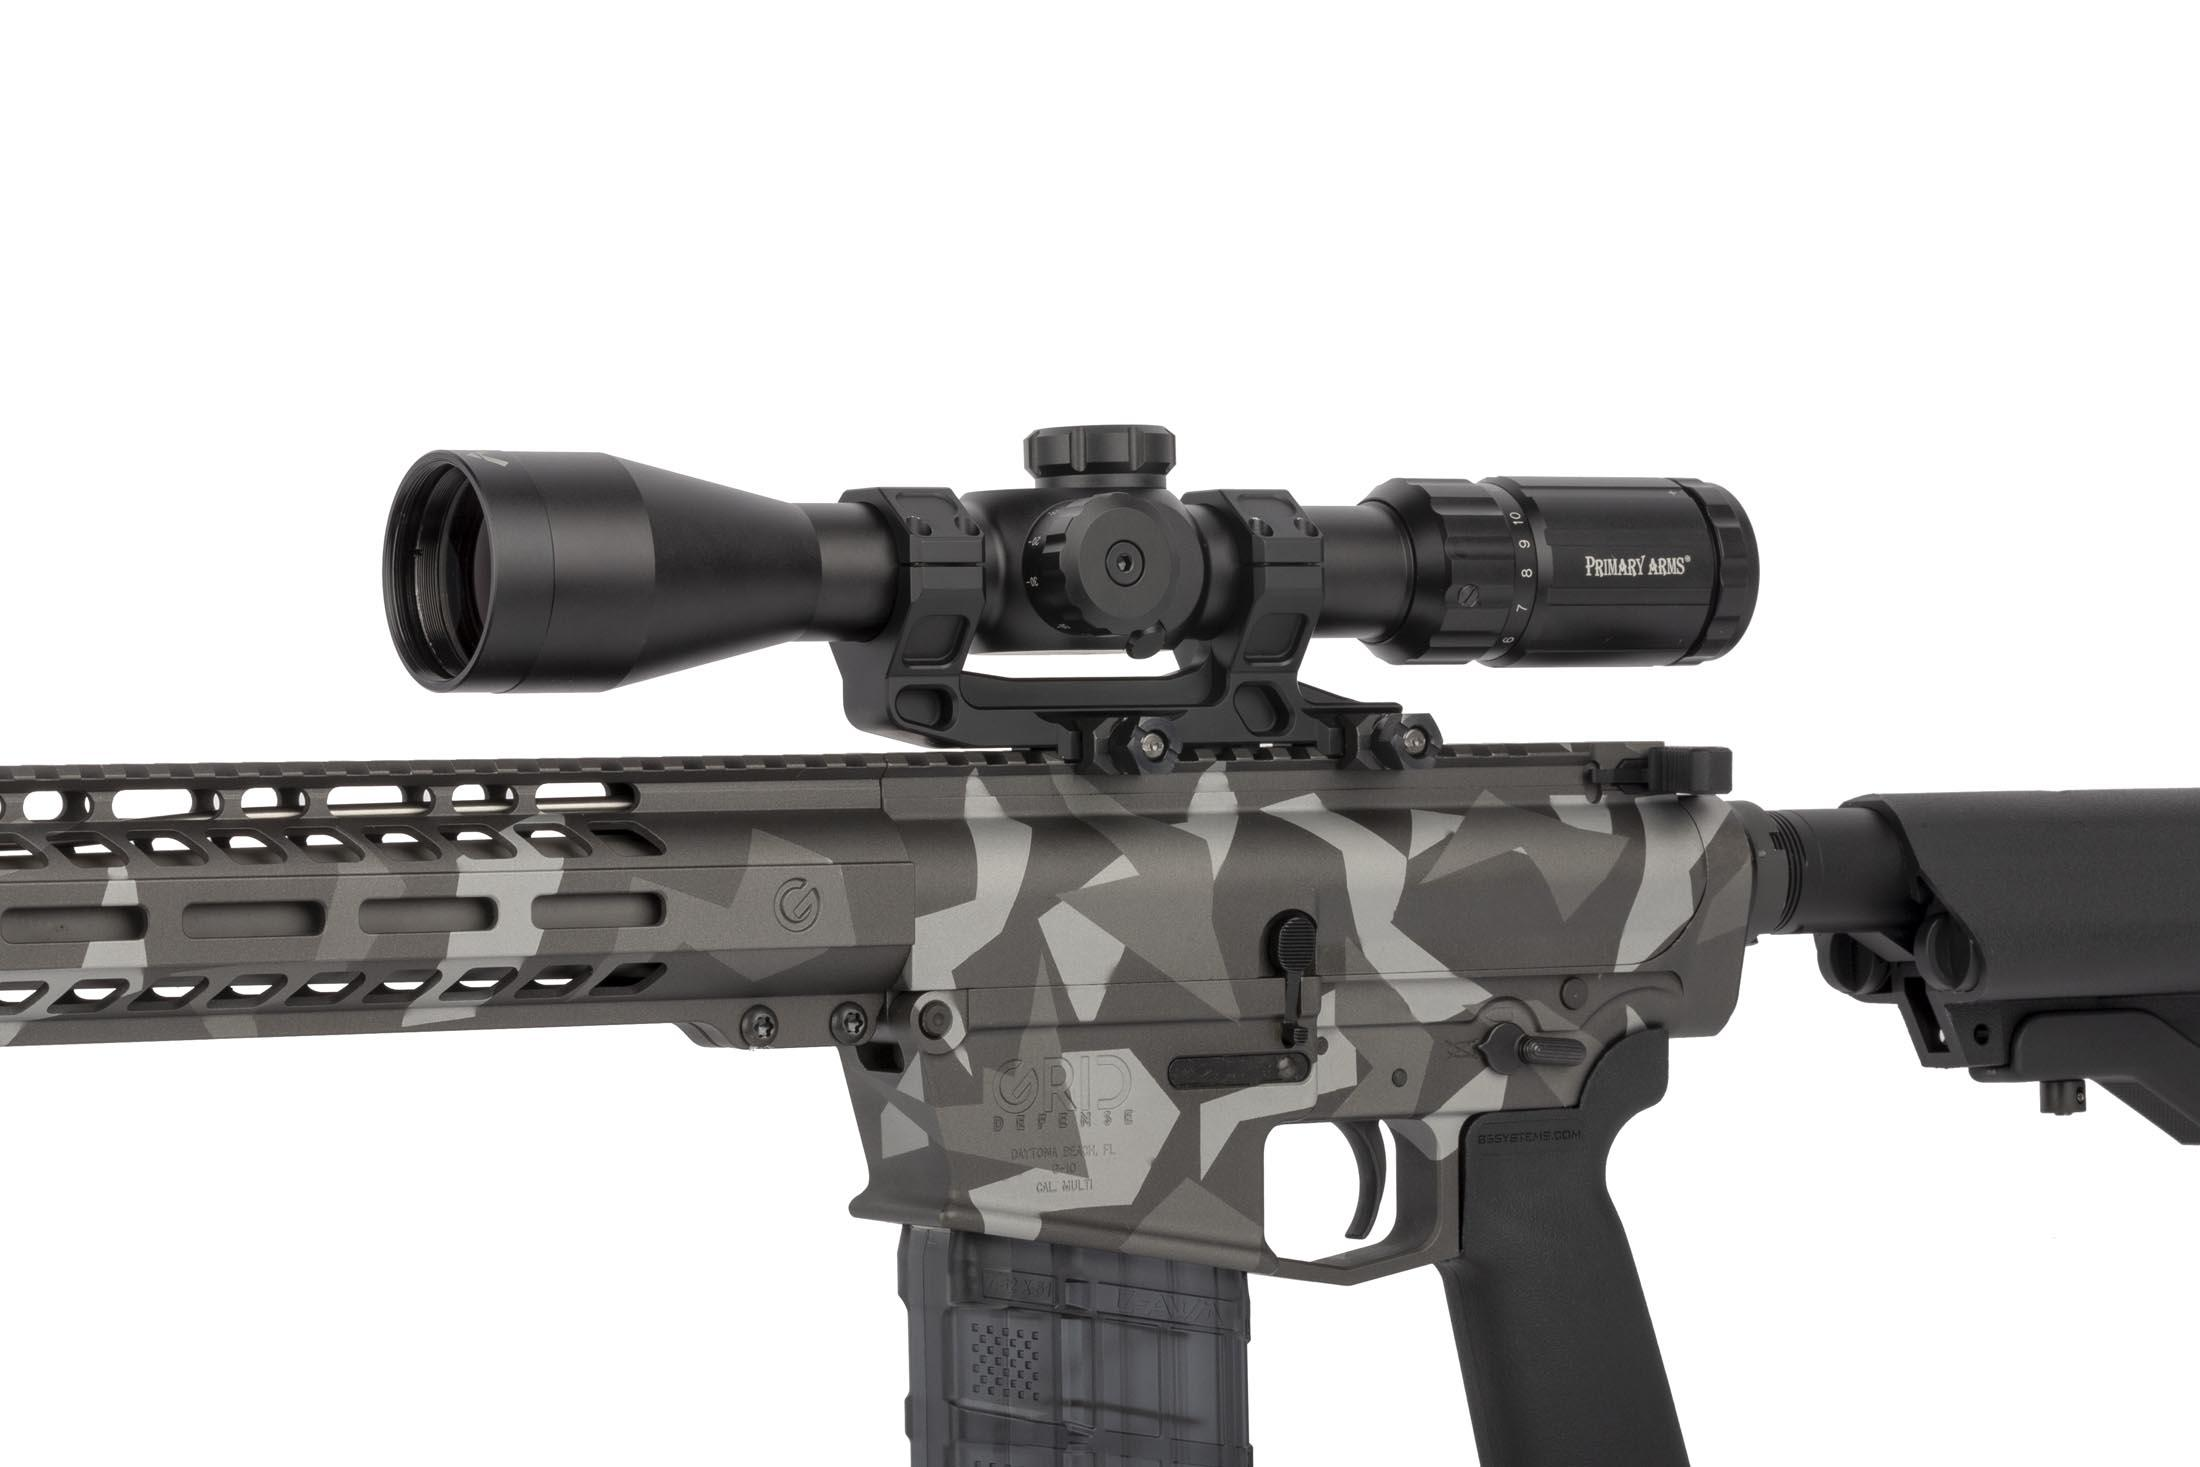 Primary Arms Silver Series 4-14x44mm FFP Rifle Scope - ACSS-Orion